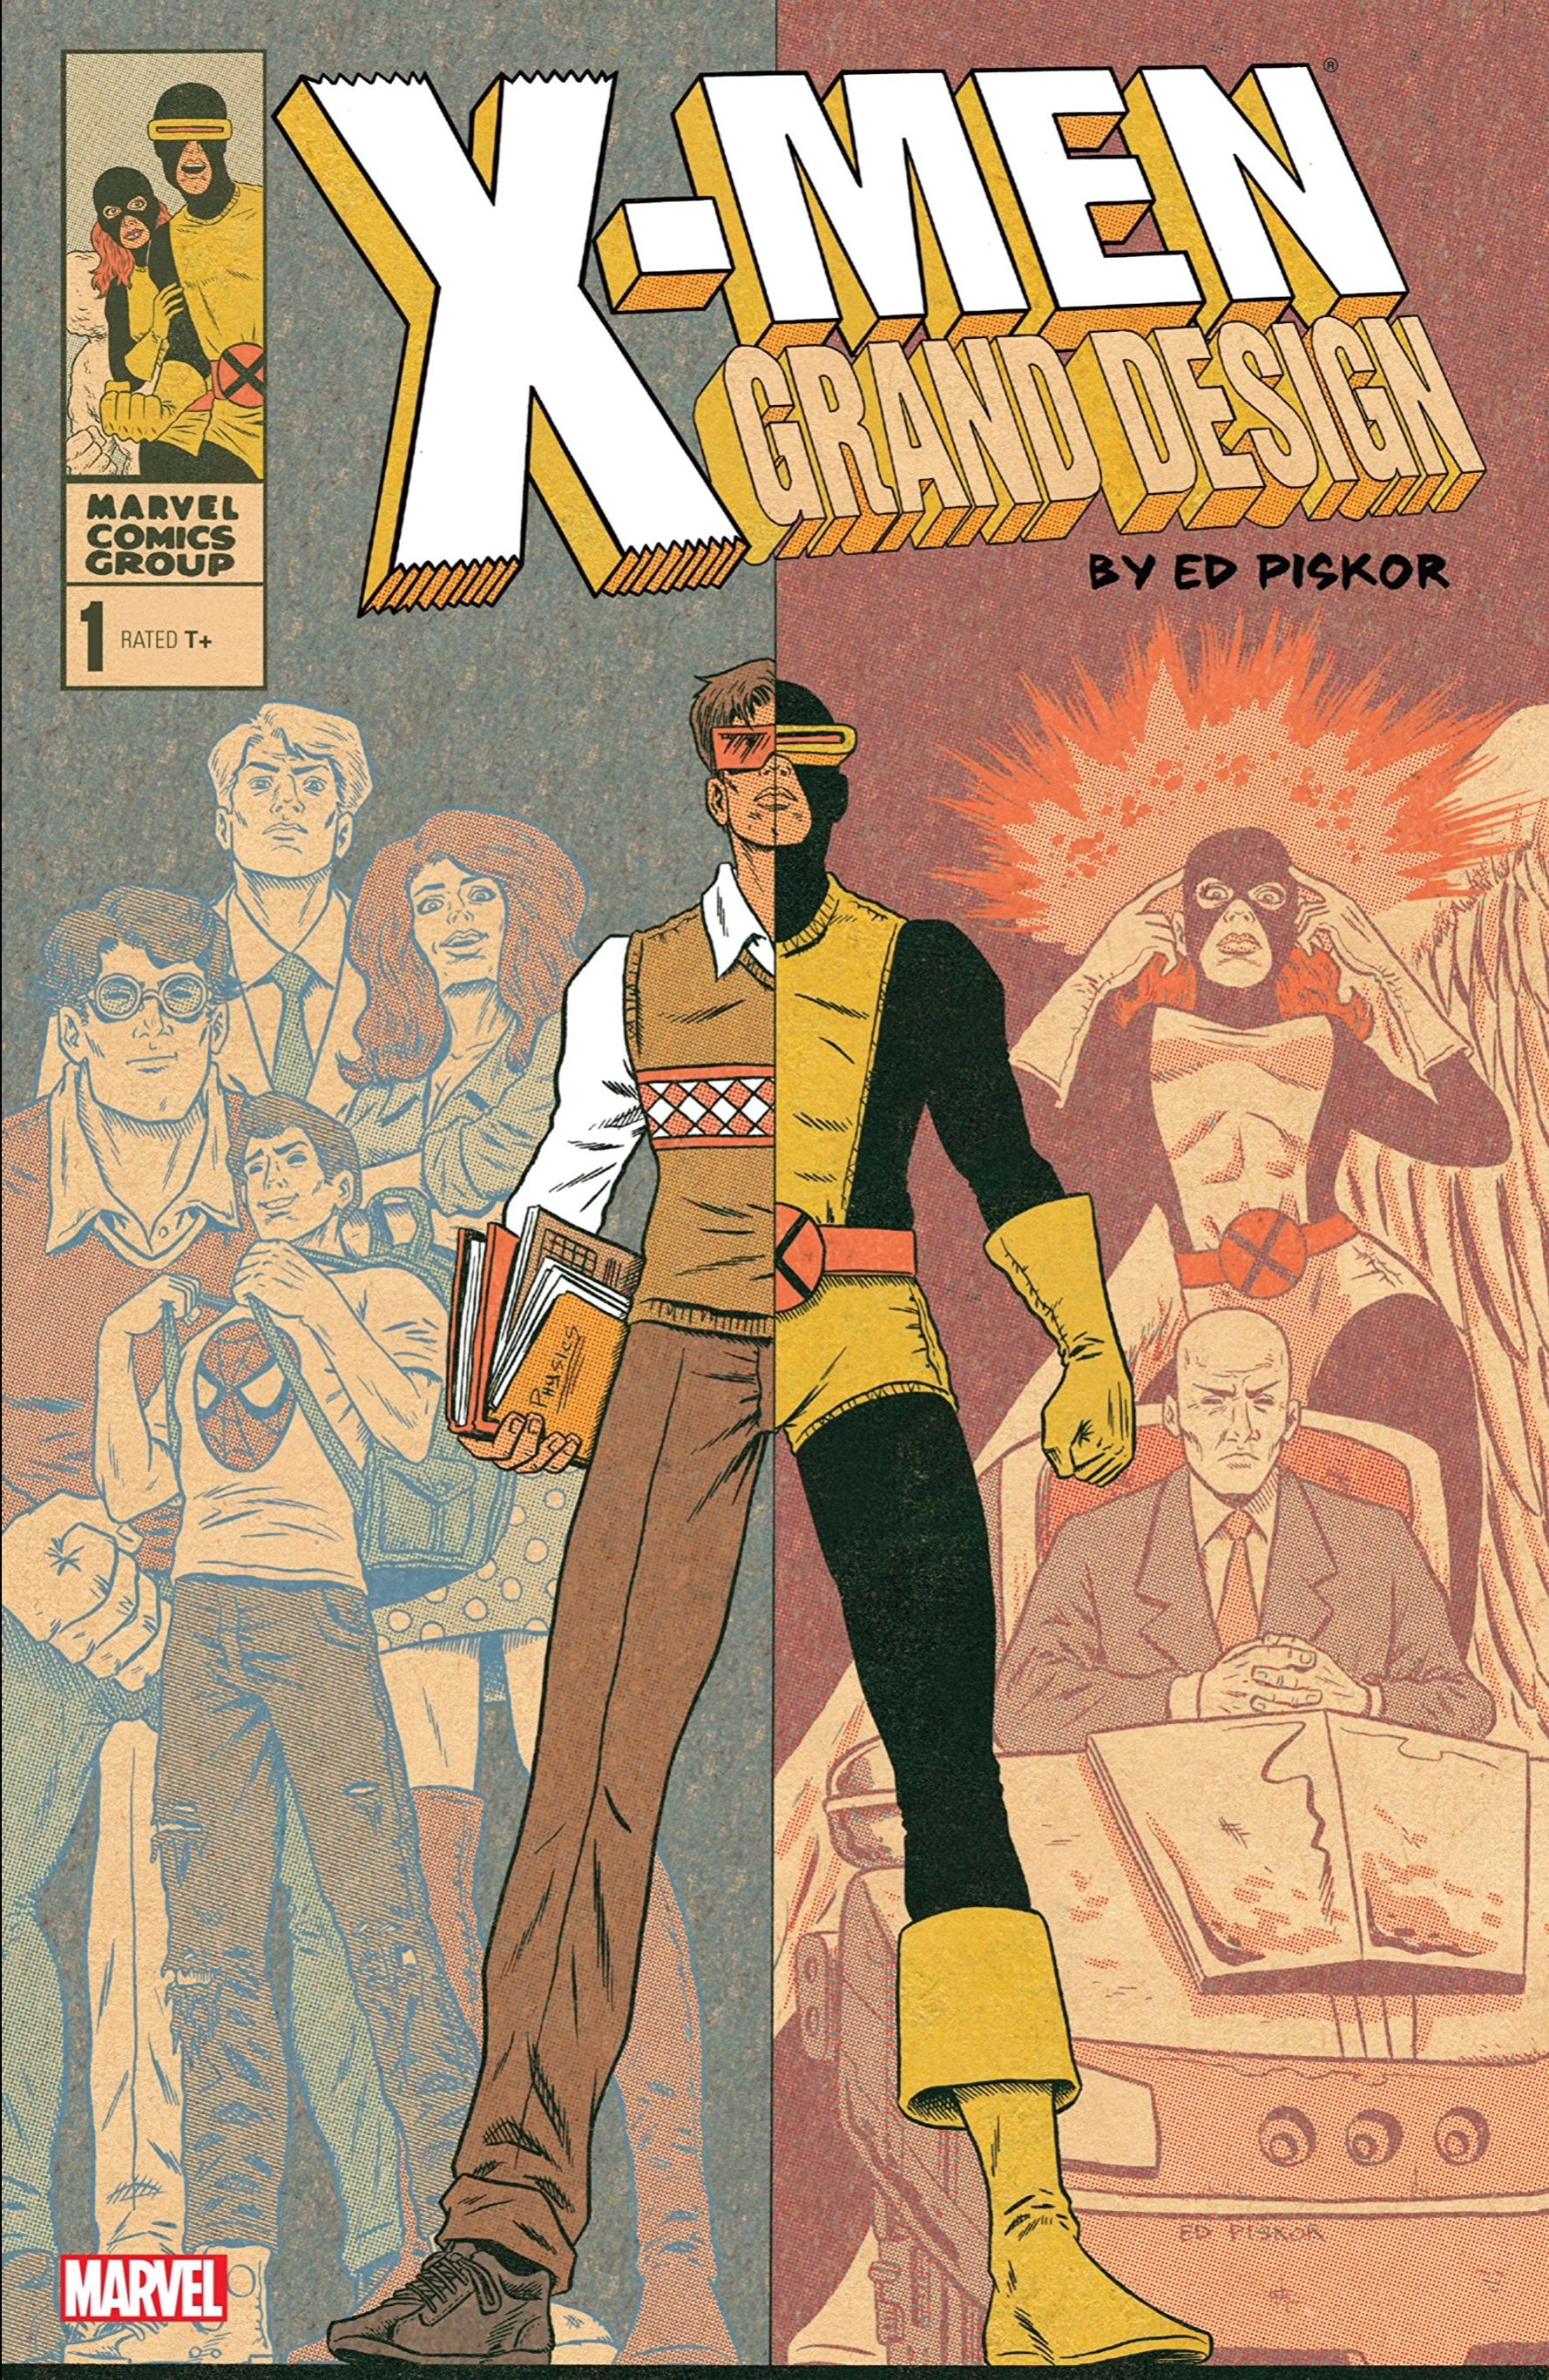 From hip-hop to X-Men — meet the artist rewriting Marvel history